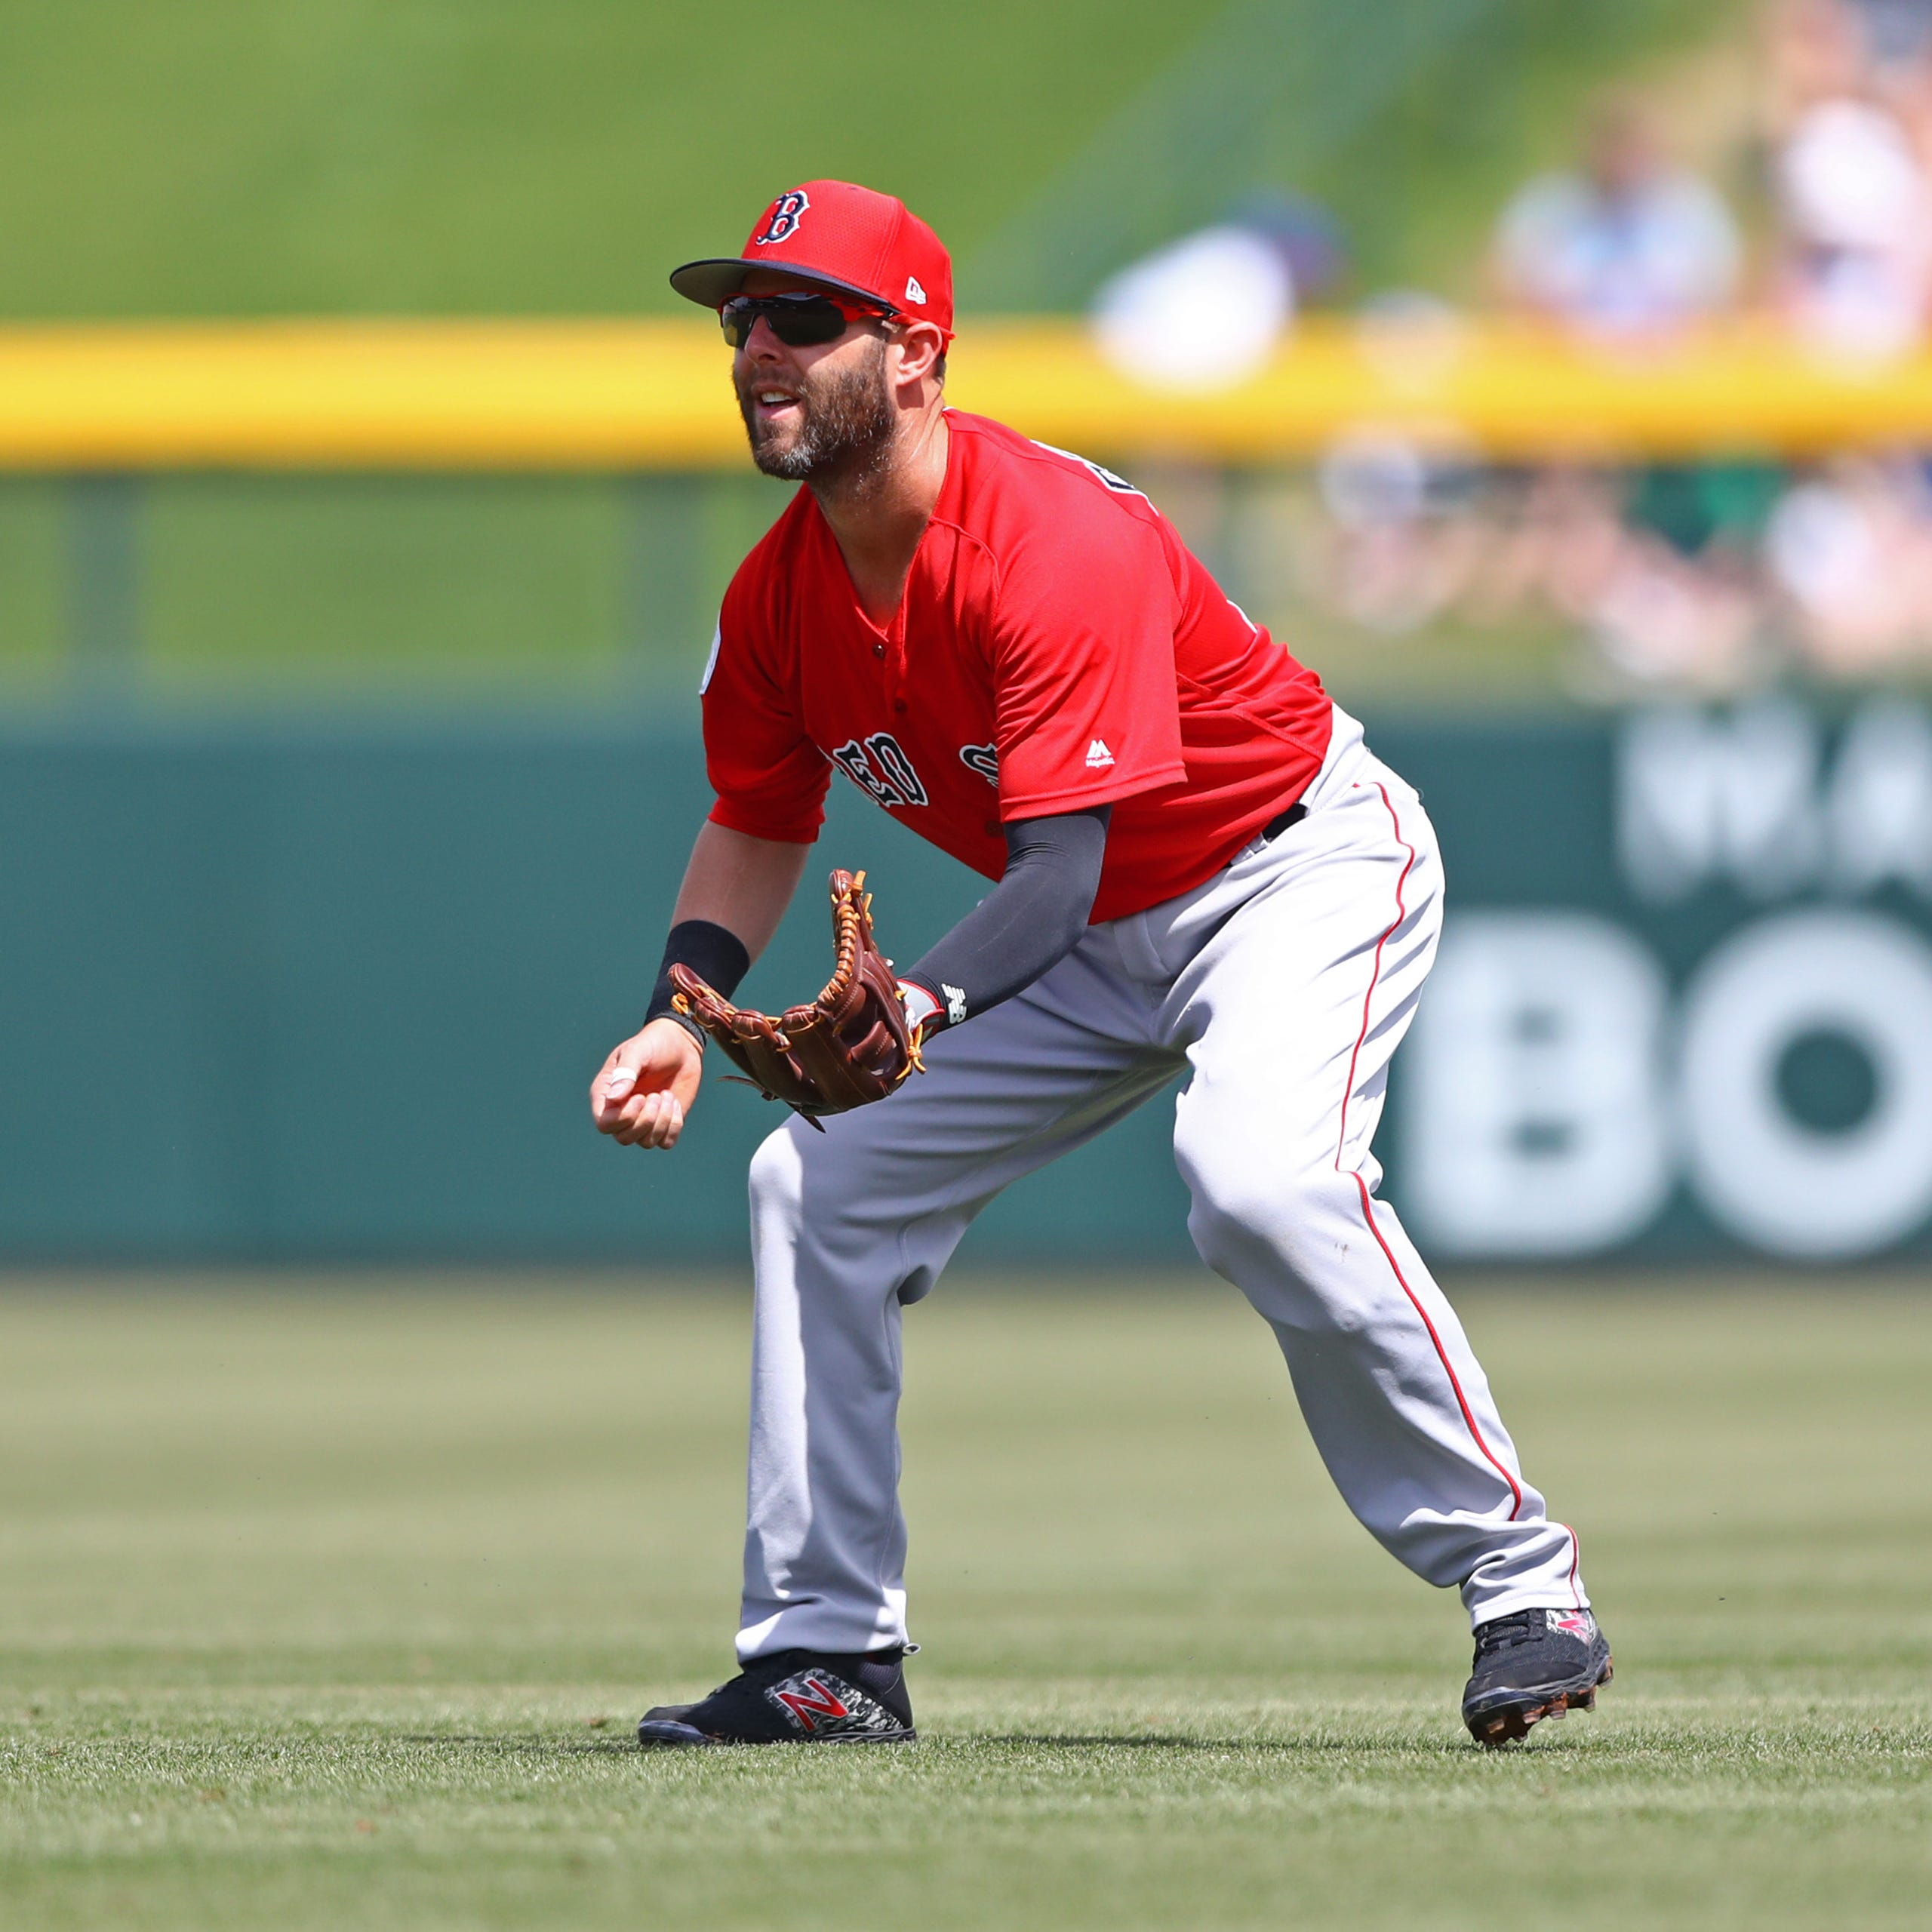 Excited that Red Sox's Dustin Pedroia is opening Greenville's season? So are the Drive